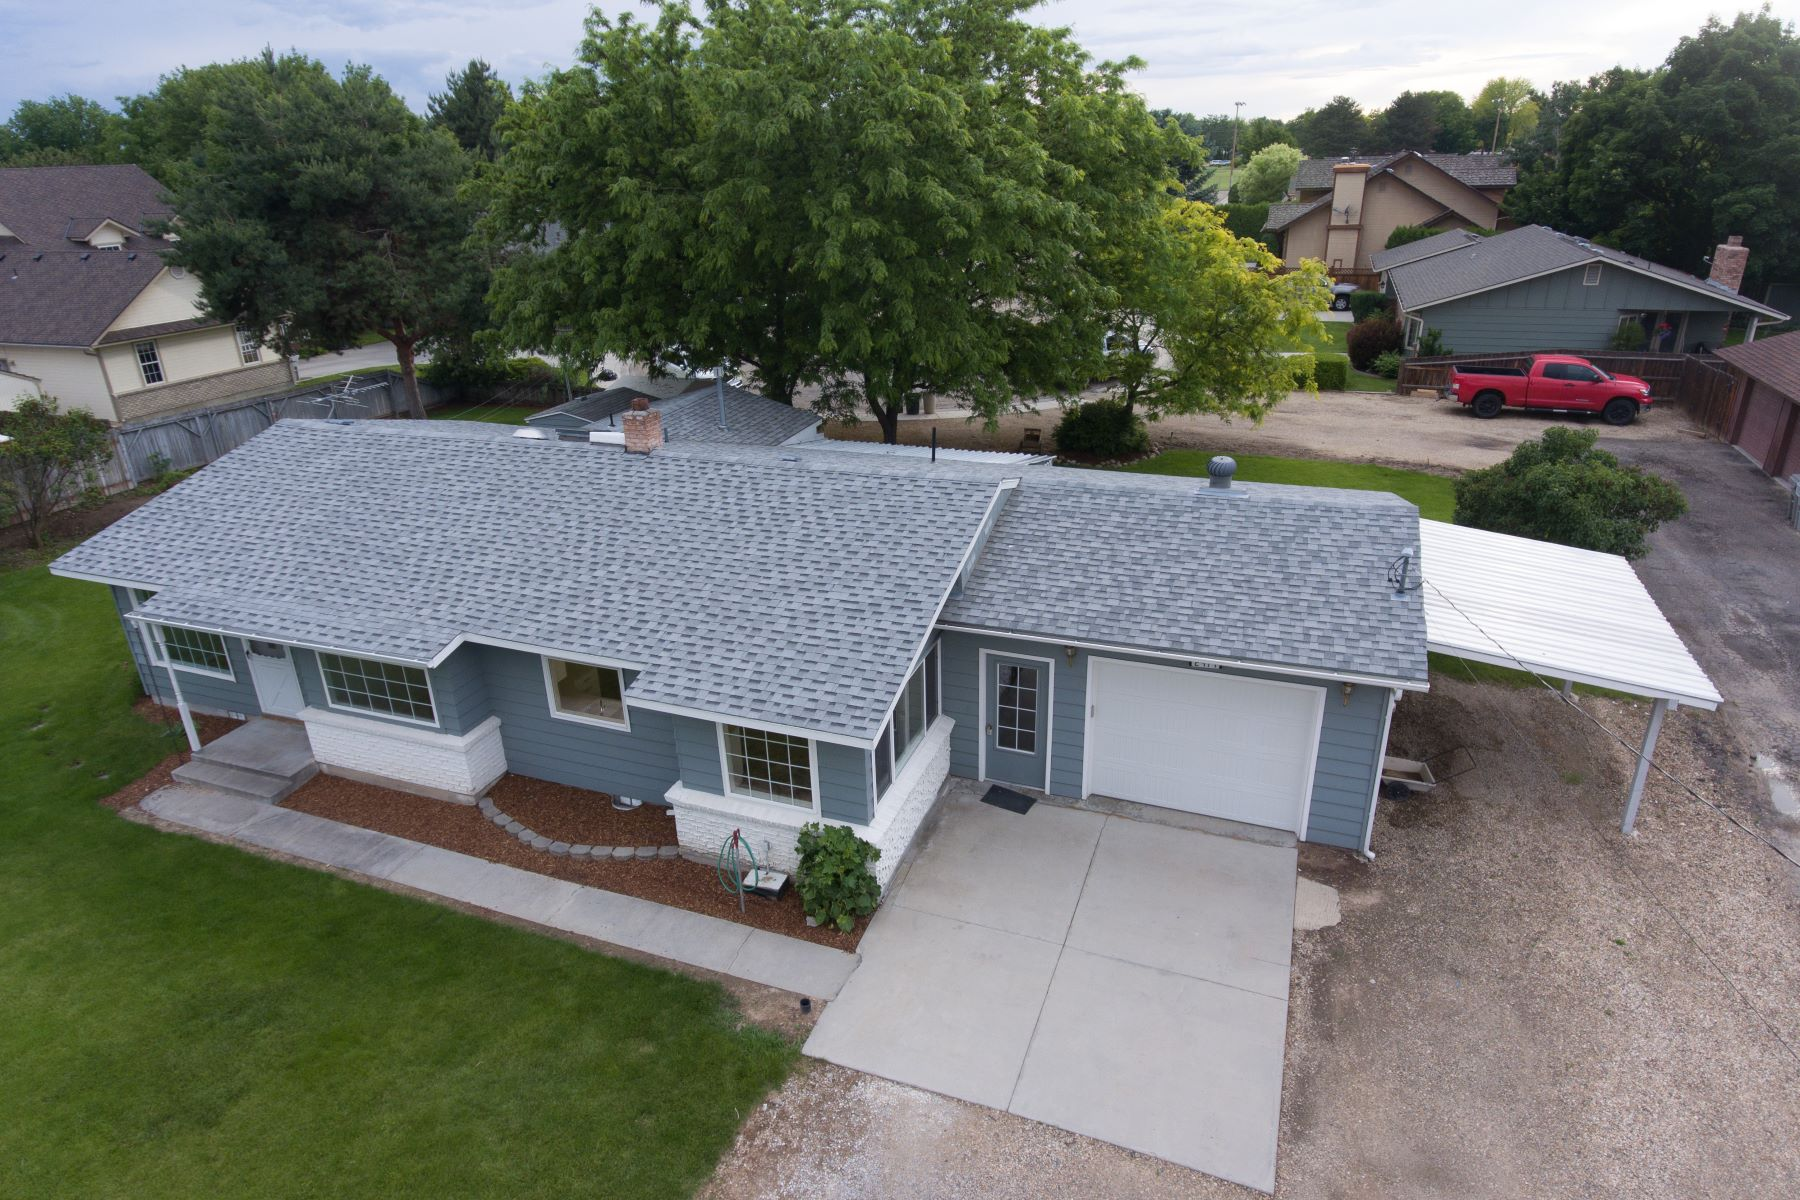 Single Family Homes for Sale at 2914 10th Avenue, Caldwell 2914 S 10th Ave Caldwell, Idaho 83605 United States